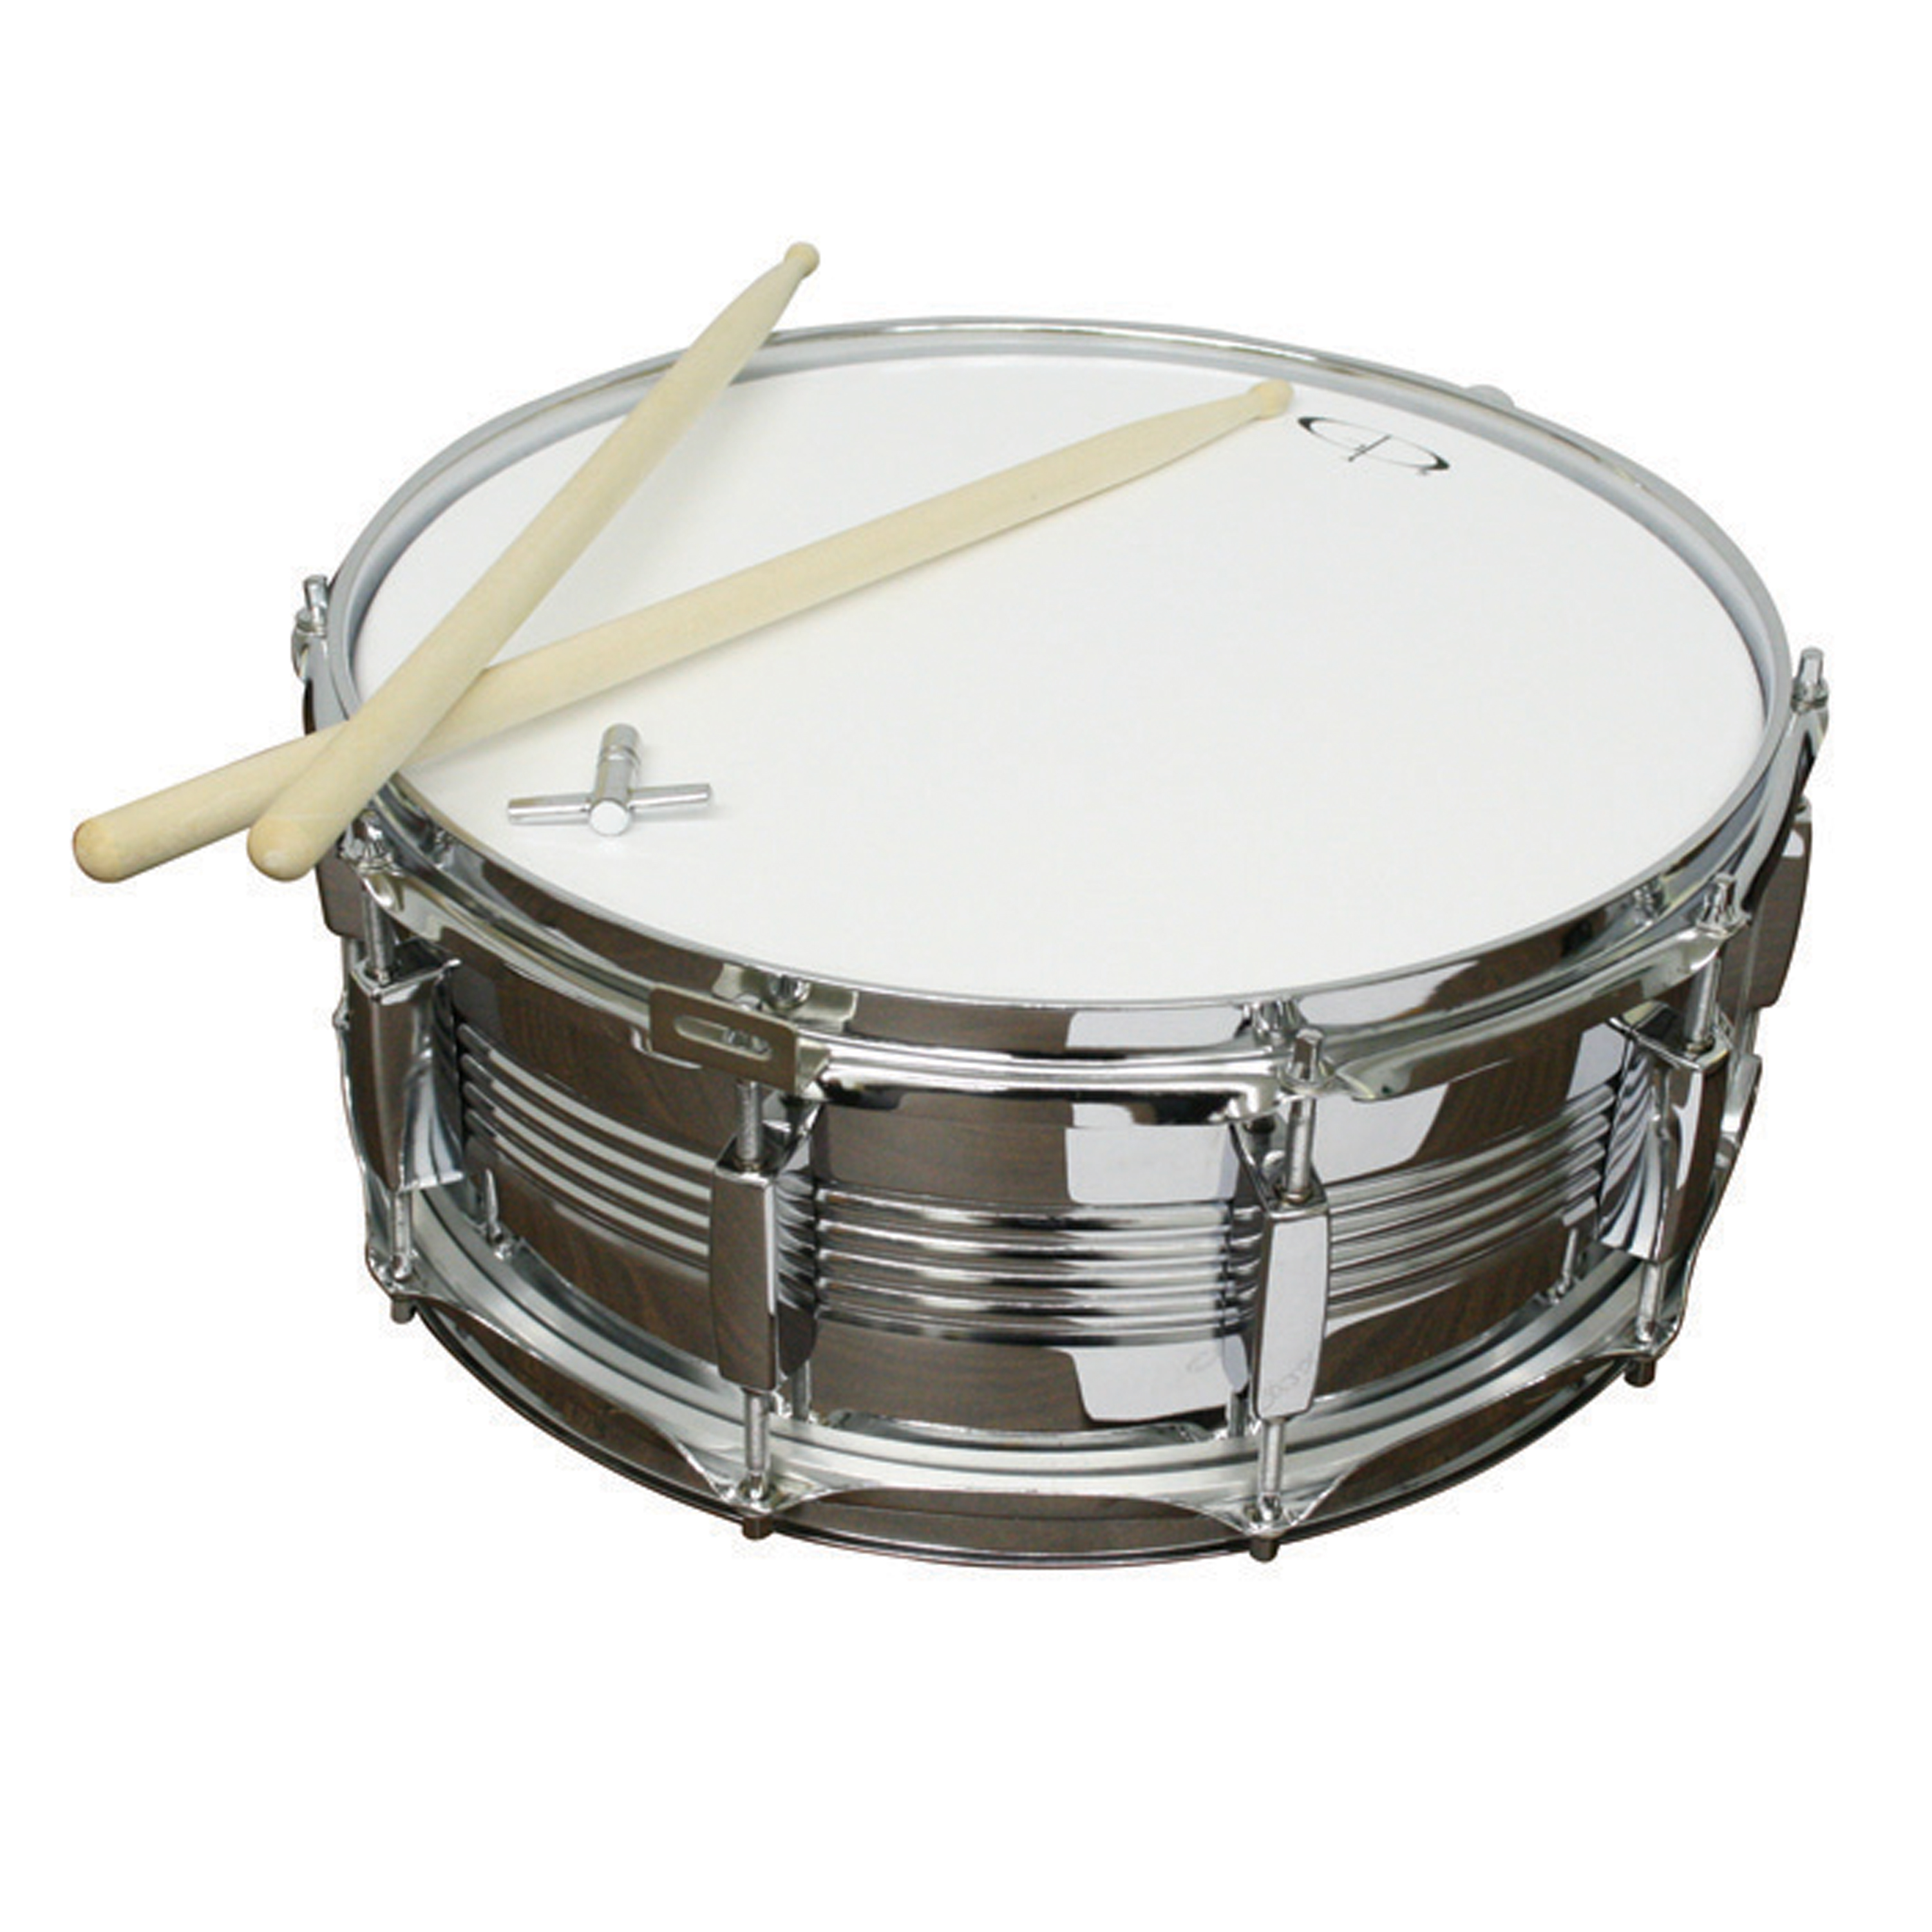 GP Percussion SDC201 14-inch, 10-Lug Metal Snare Drum by GP Percussion